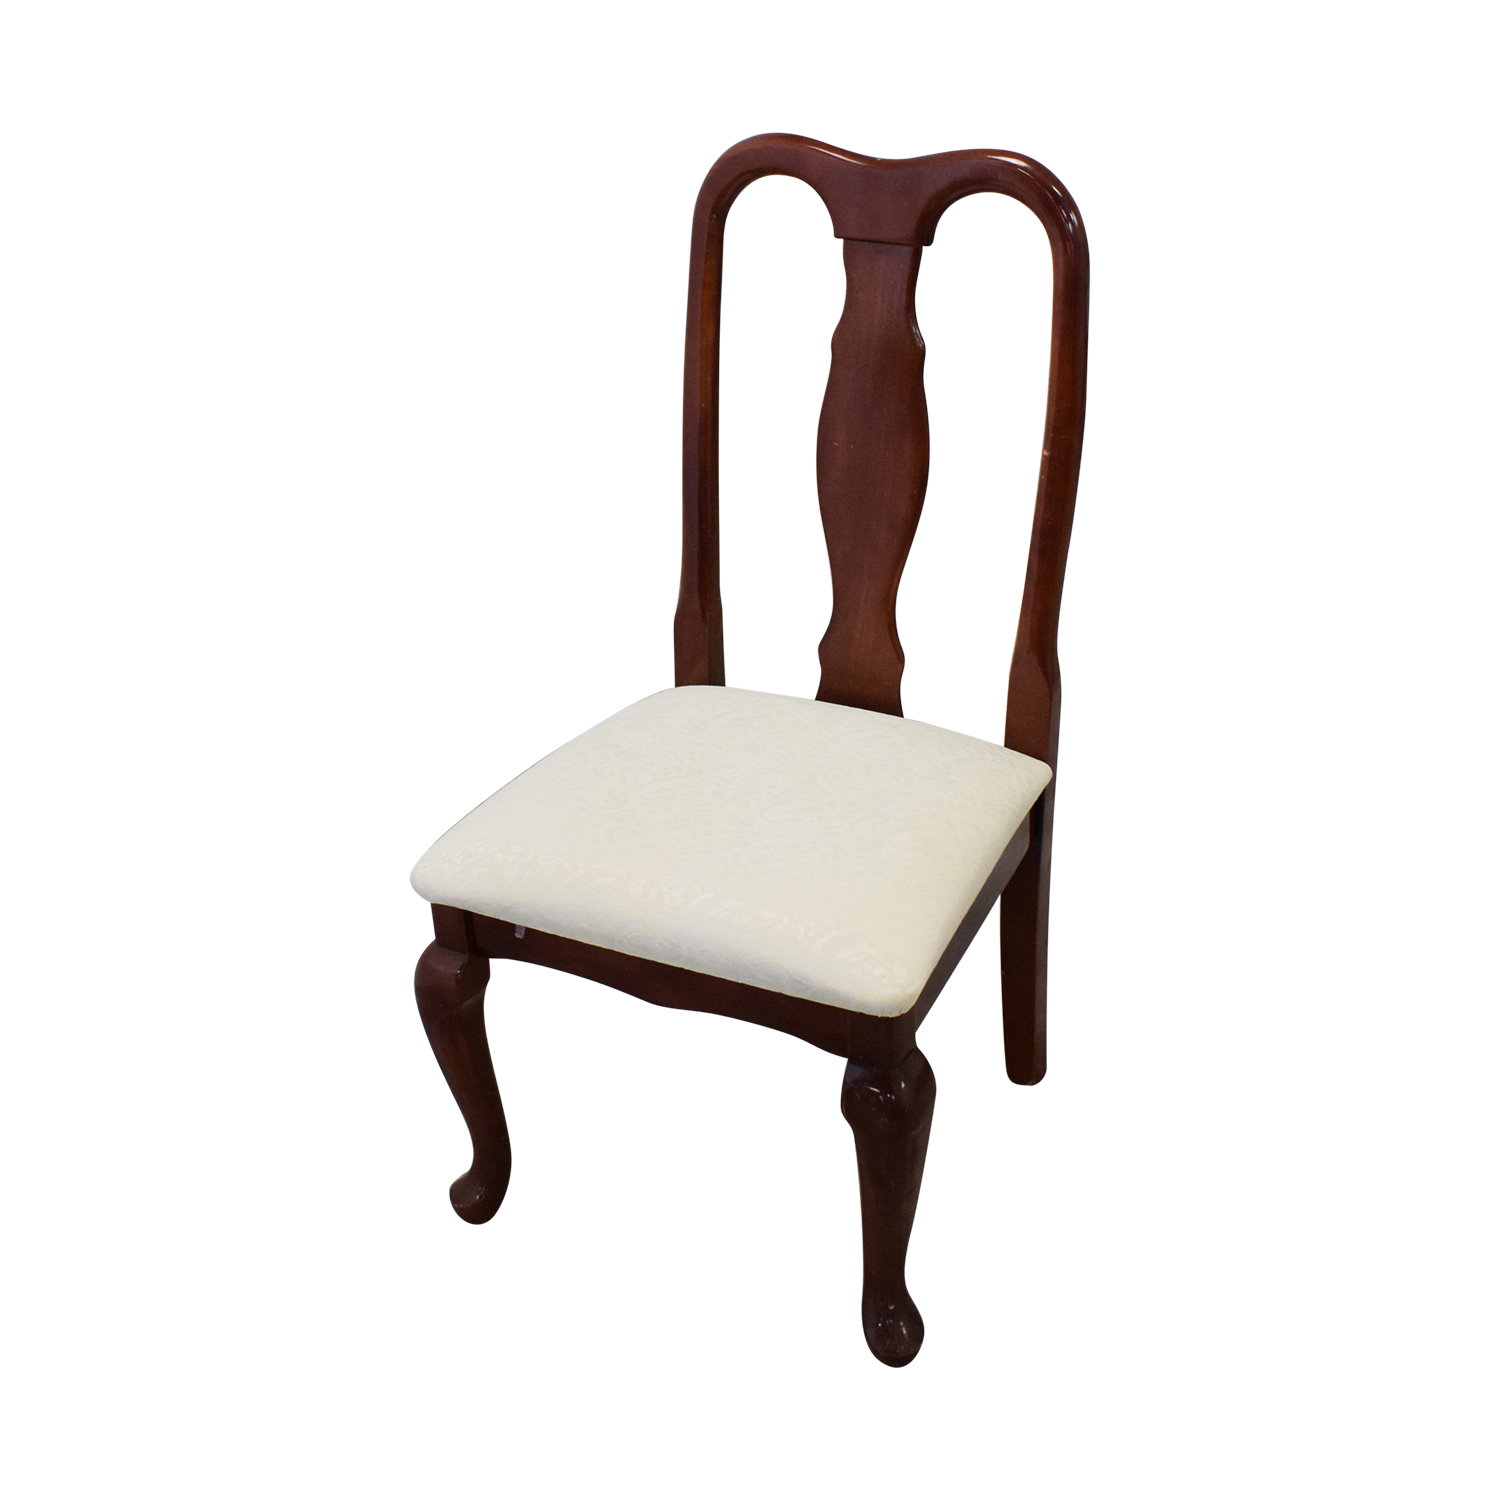 Upholsted Dining Chairs